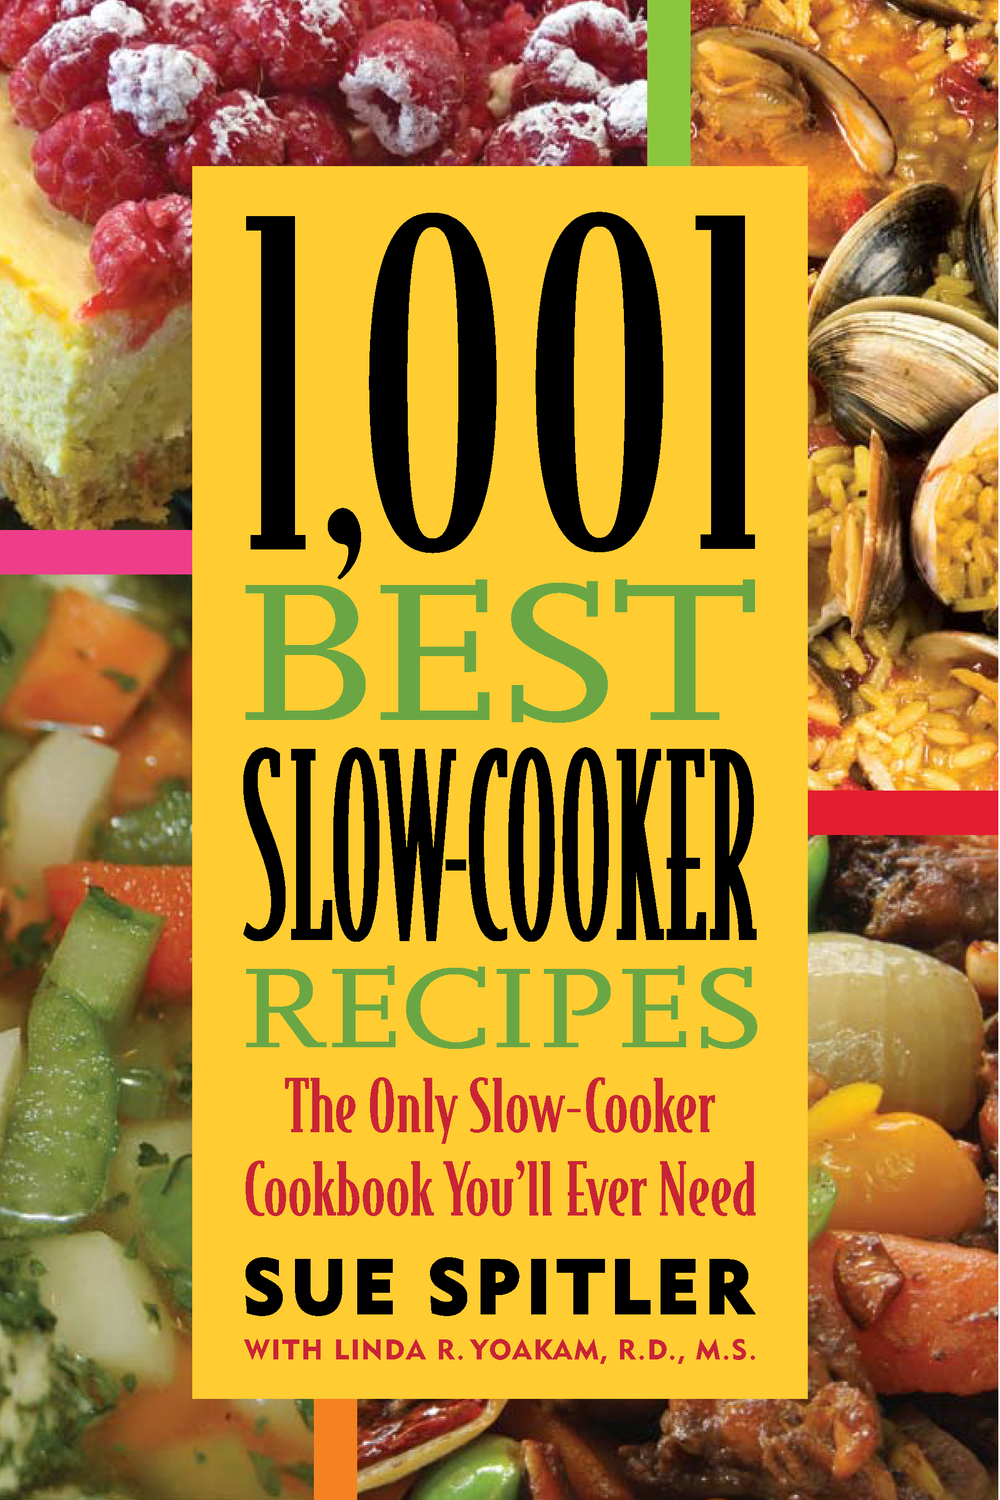 1,001 Best Slow-Cooker Recipes_Page_01.png